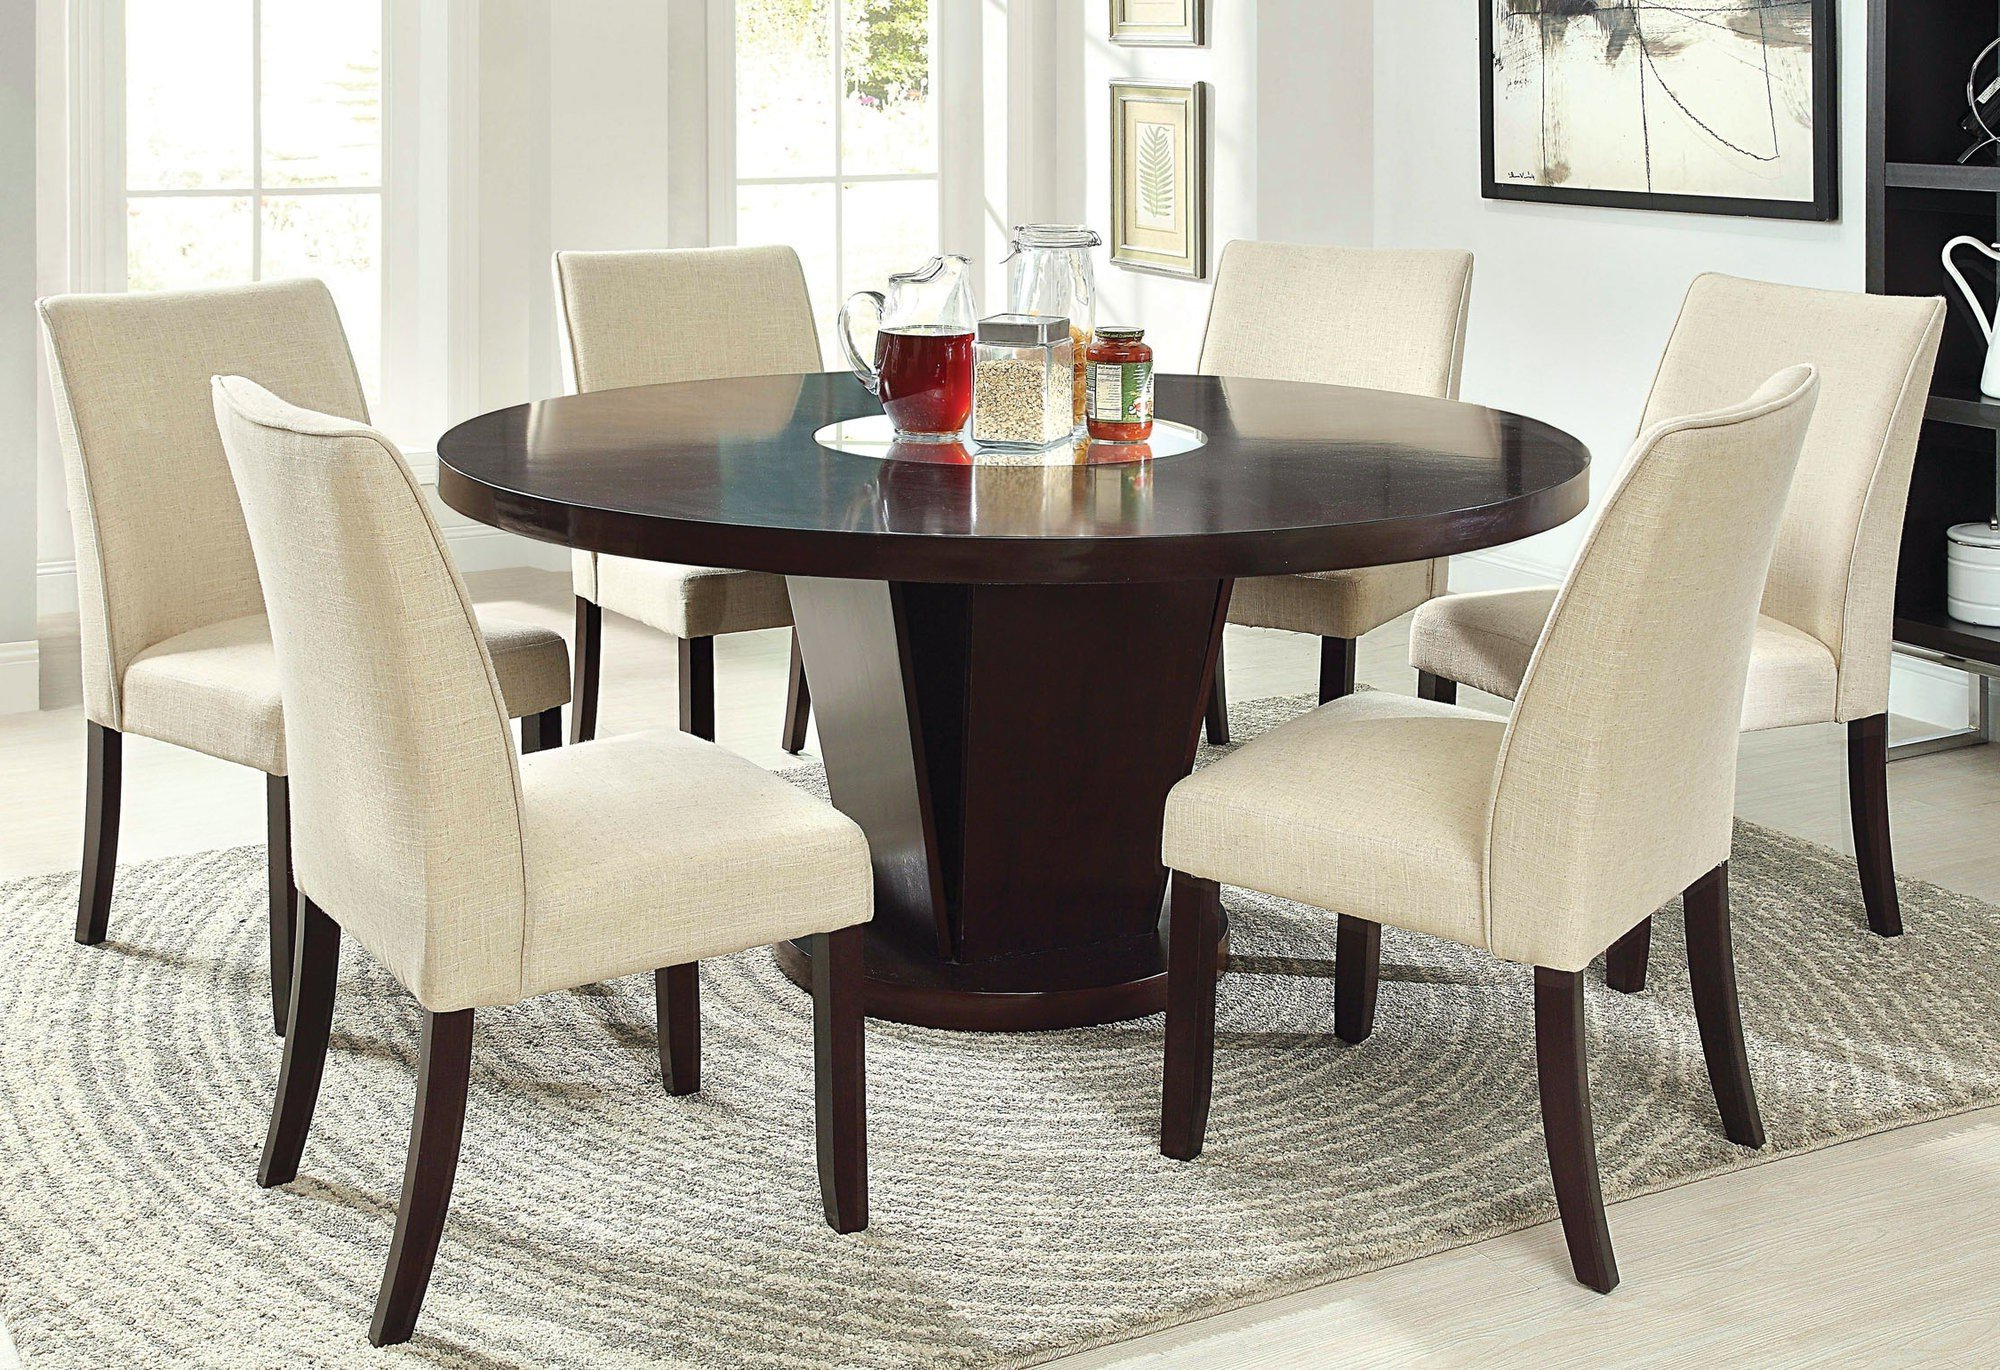 Vintage Cream Frame And Espresso Bamboo Dining Tables With Fashionable 50+ Round Dining Table For 6 You'll Love In 2020 – Visual Hunt (Gallery 27 of 30)